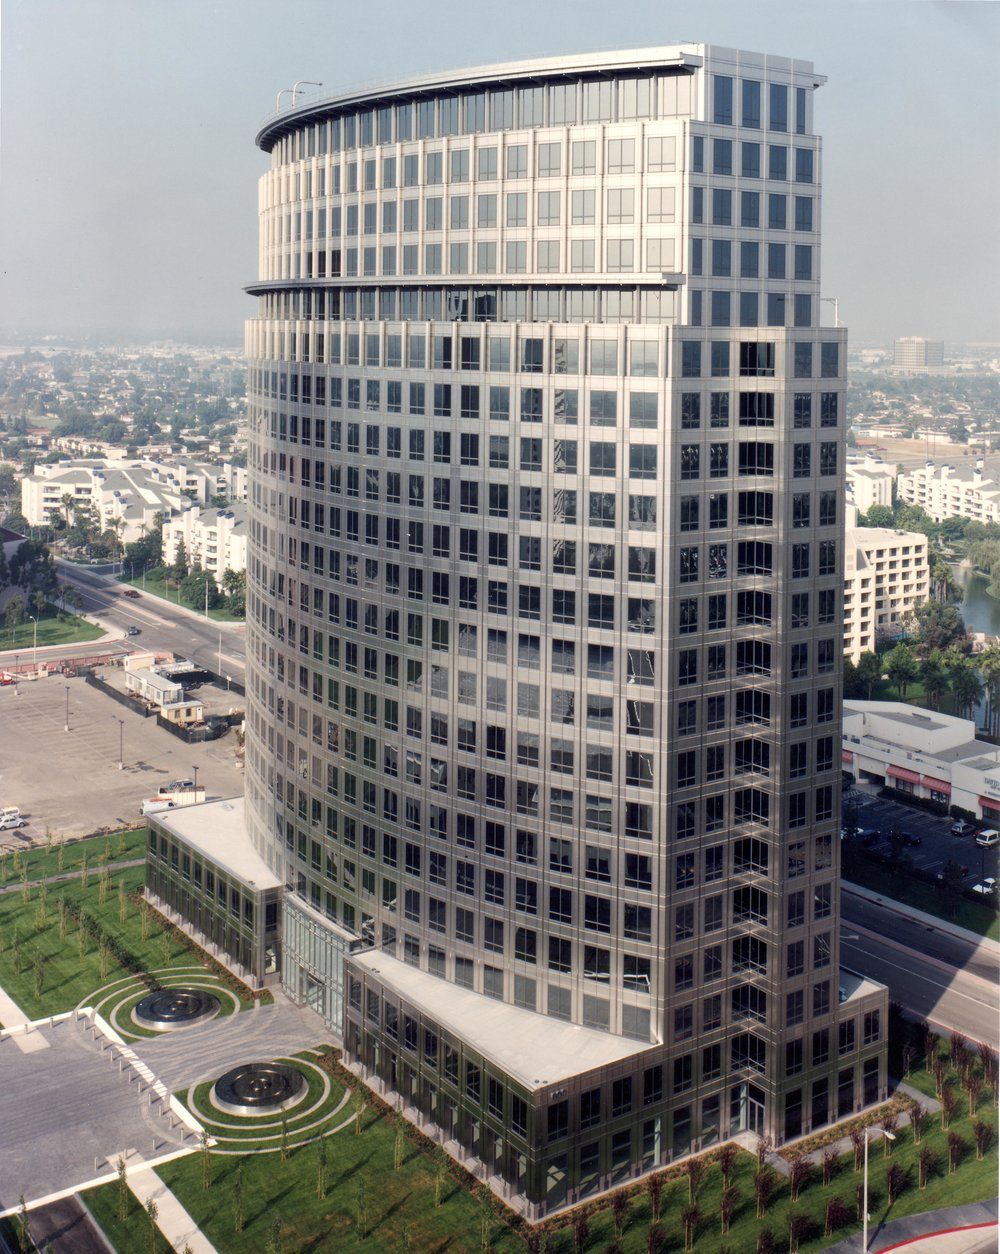 Center Tower, Costa Mesa, CA, C.J. Segerstrom, tenant development for CRSS & Gensler.